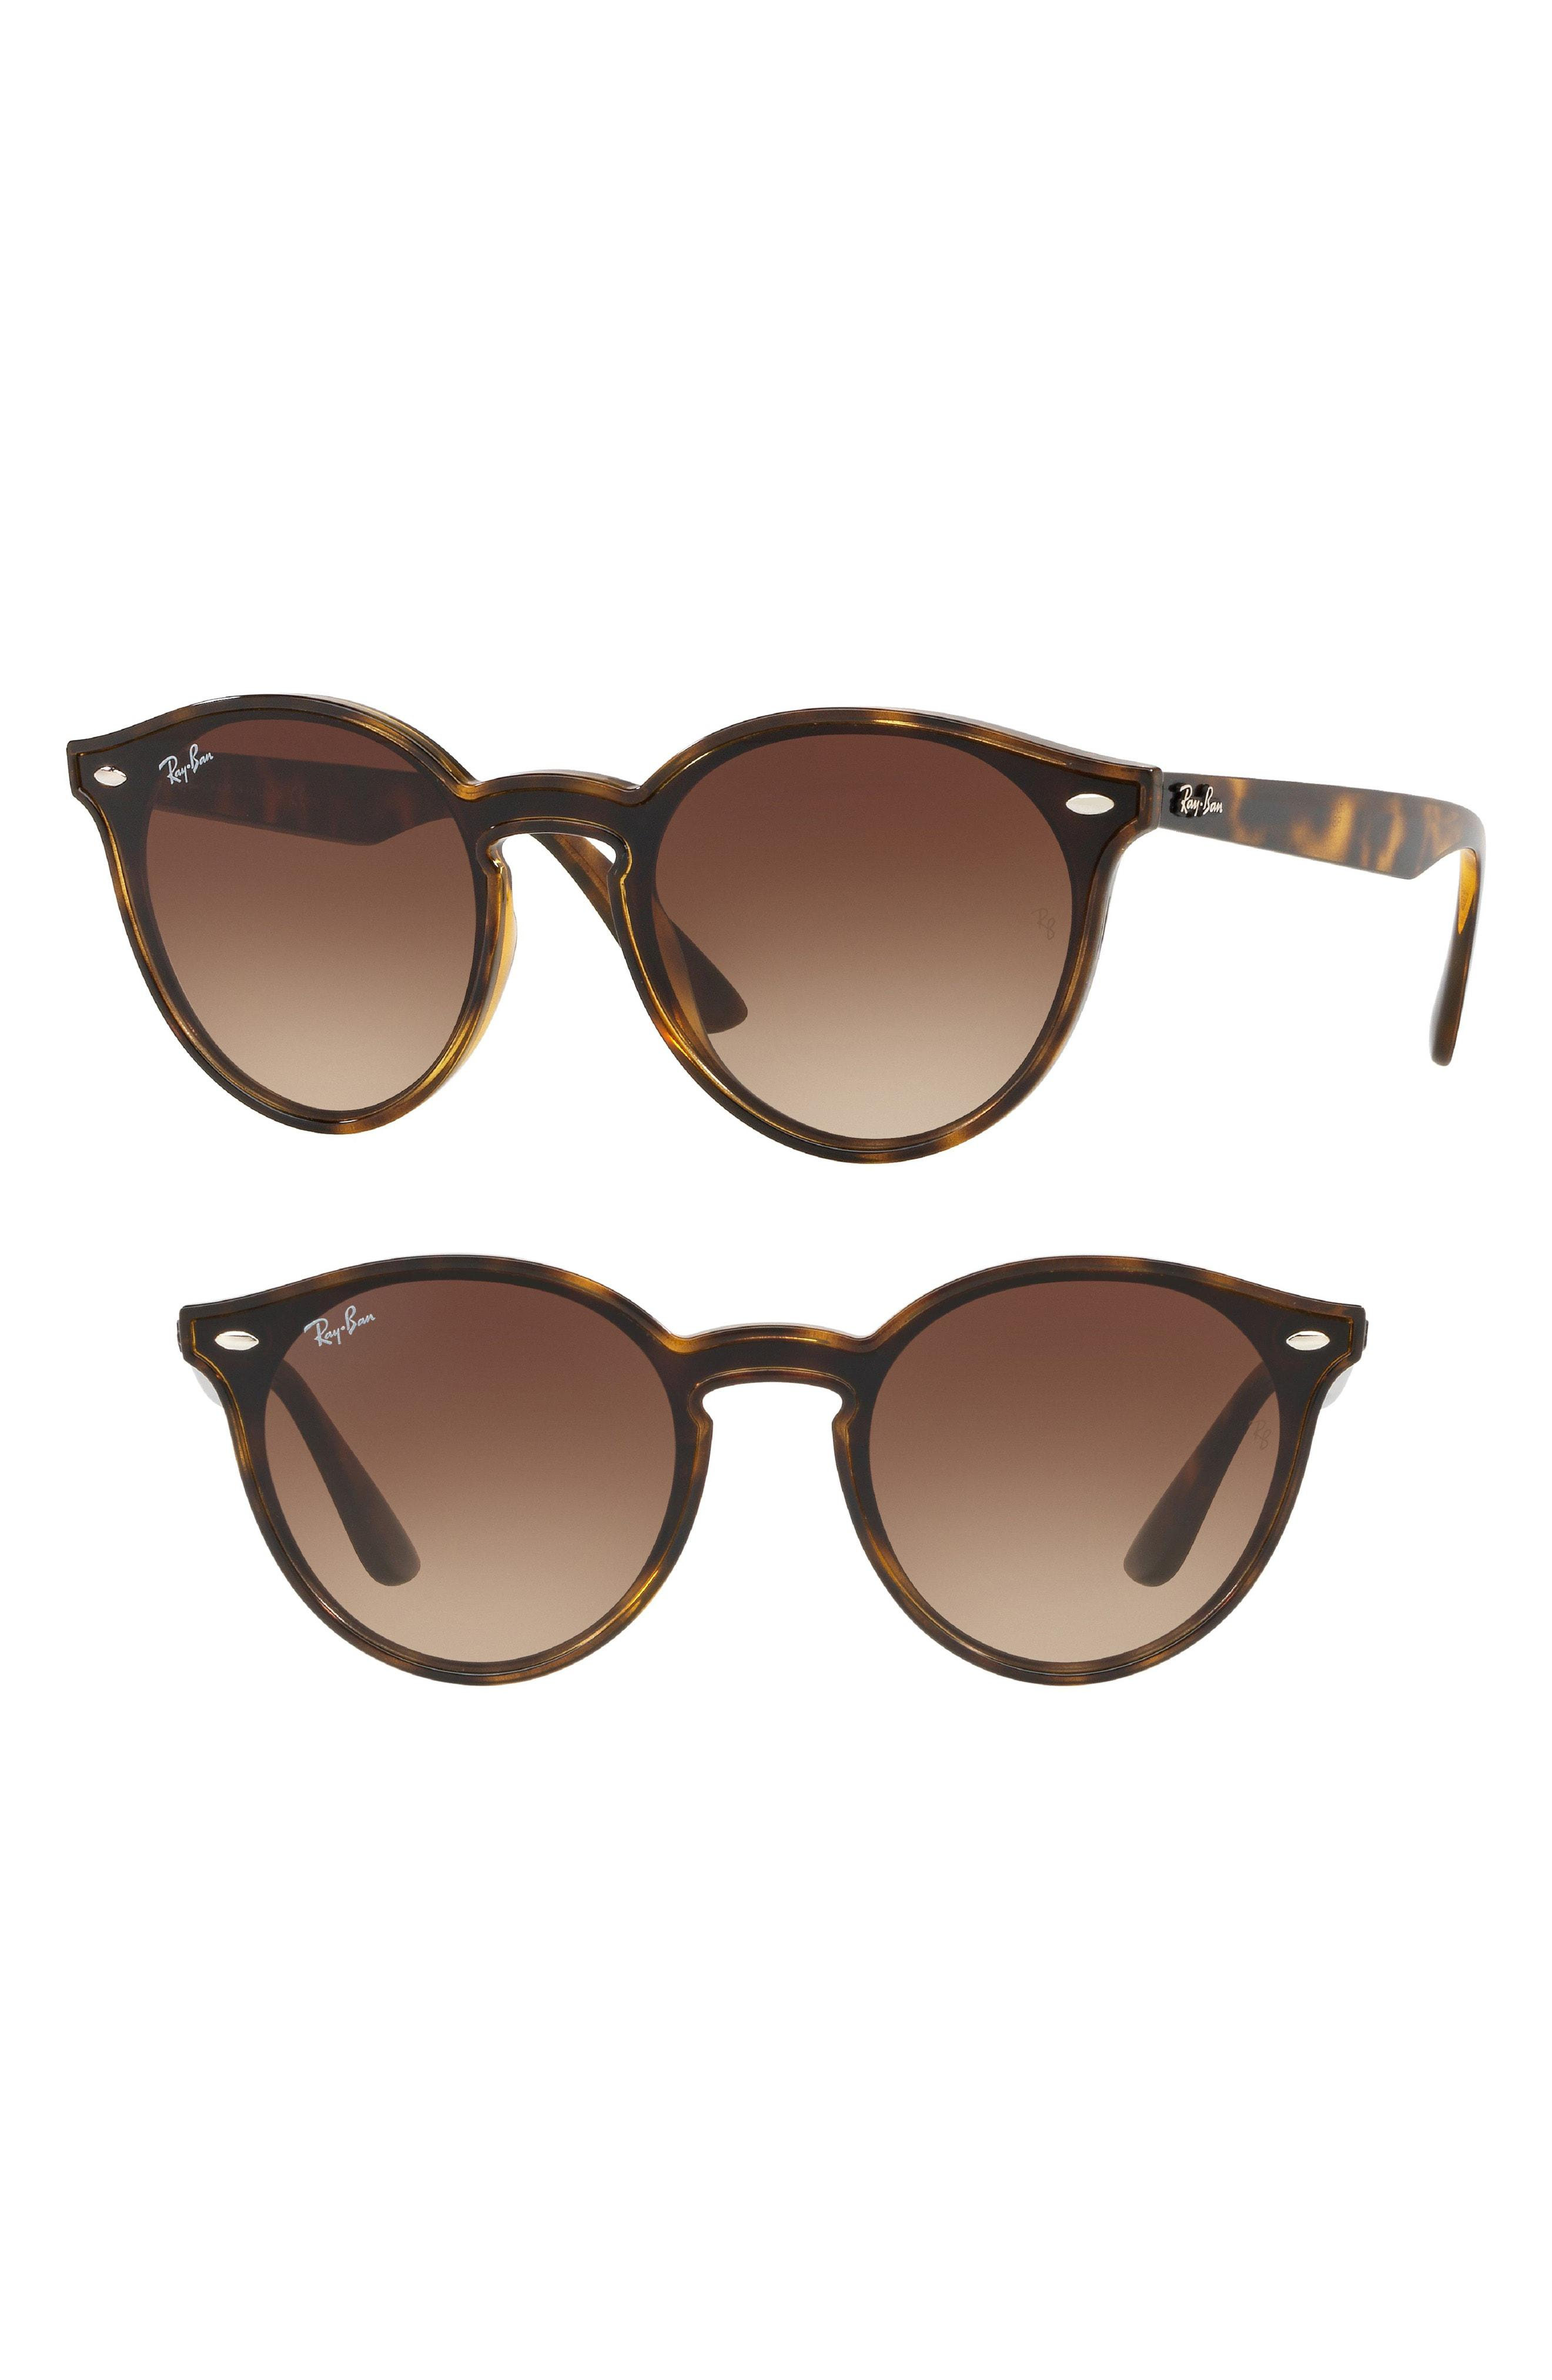 7b37e72675 Lyst - Ray-Ban Blaze 37mm Round Sunglasses - in Brown for Men